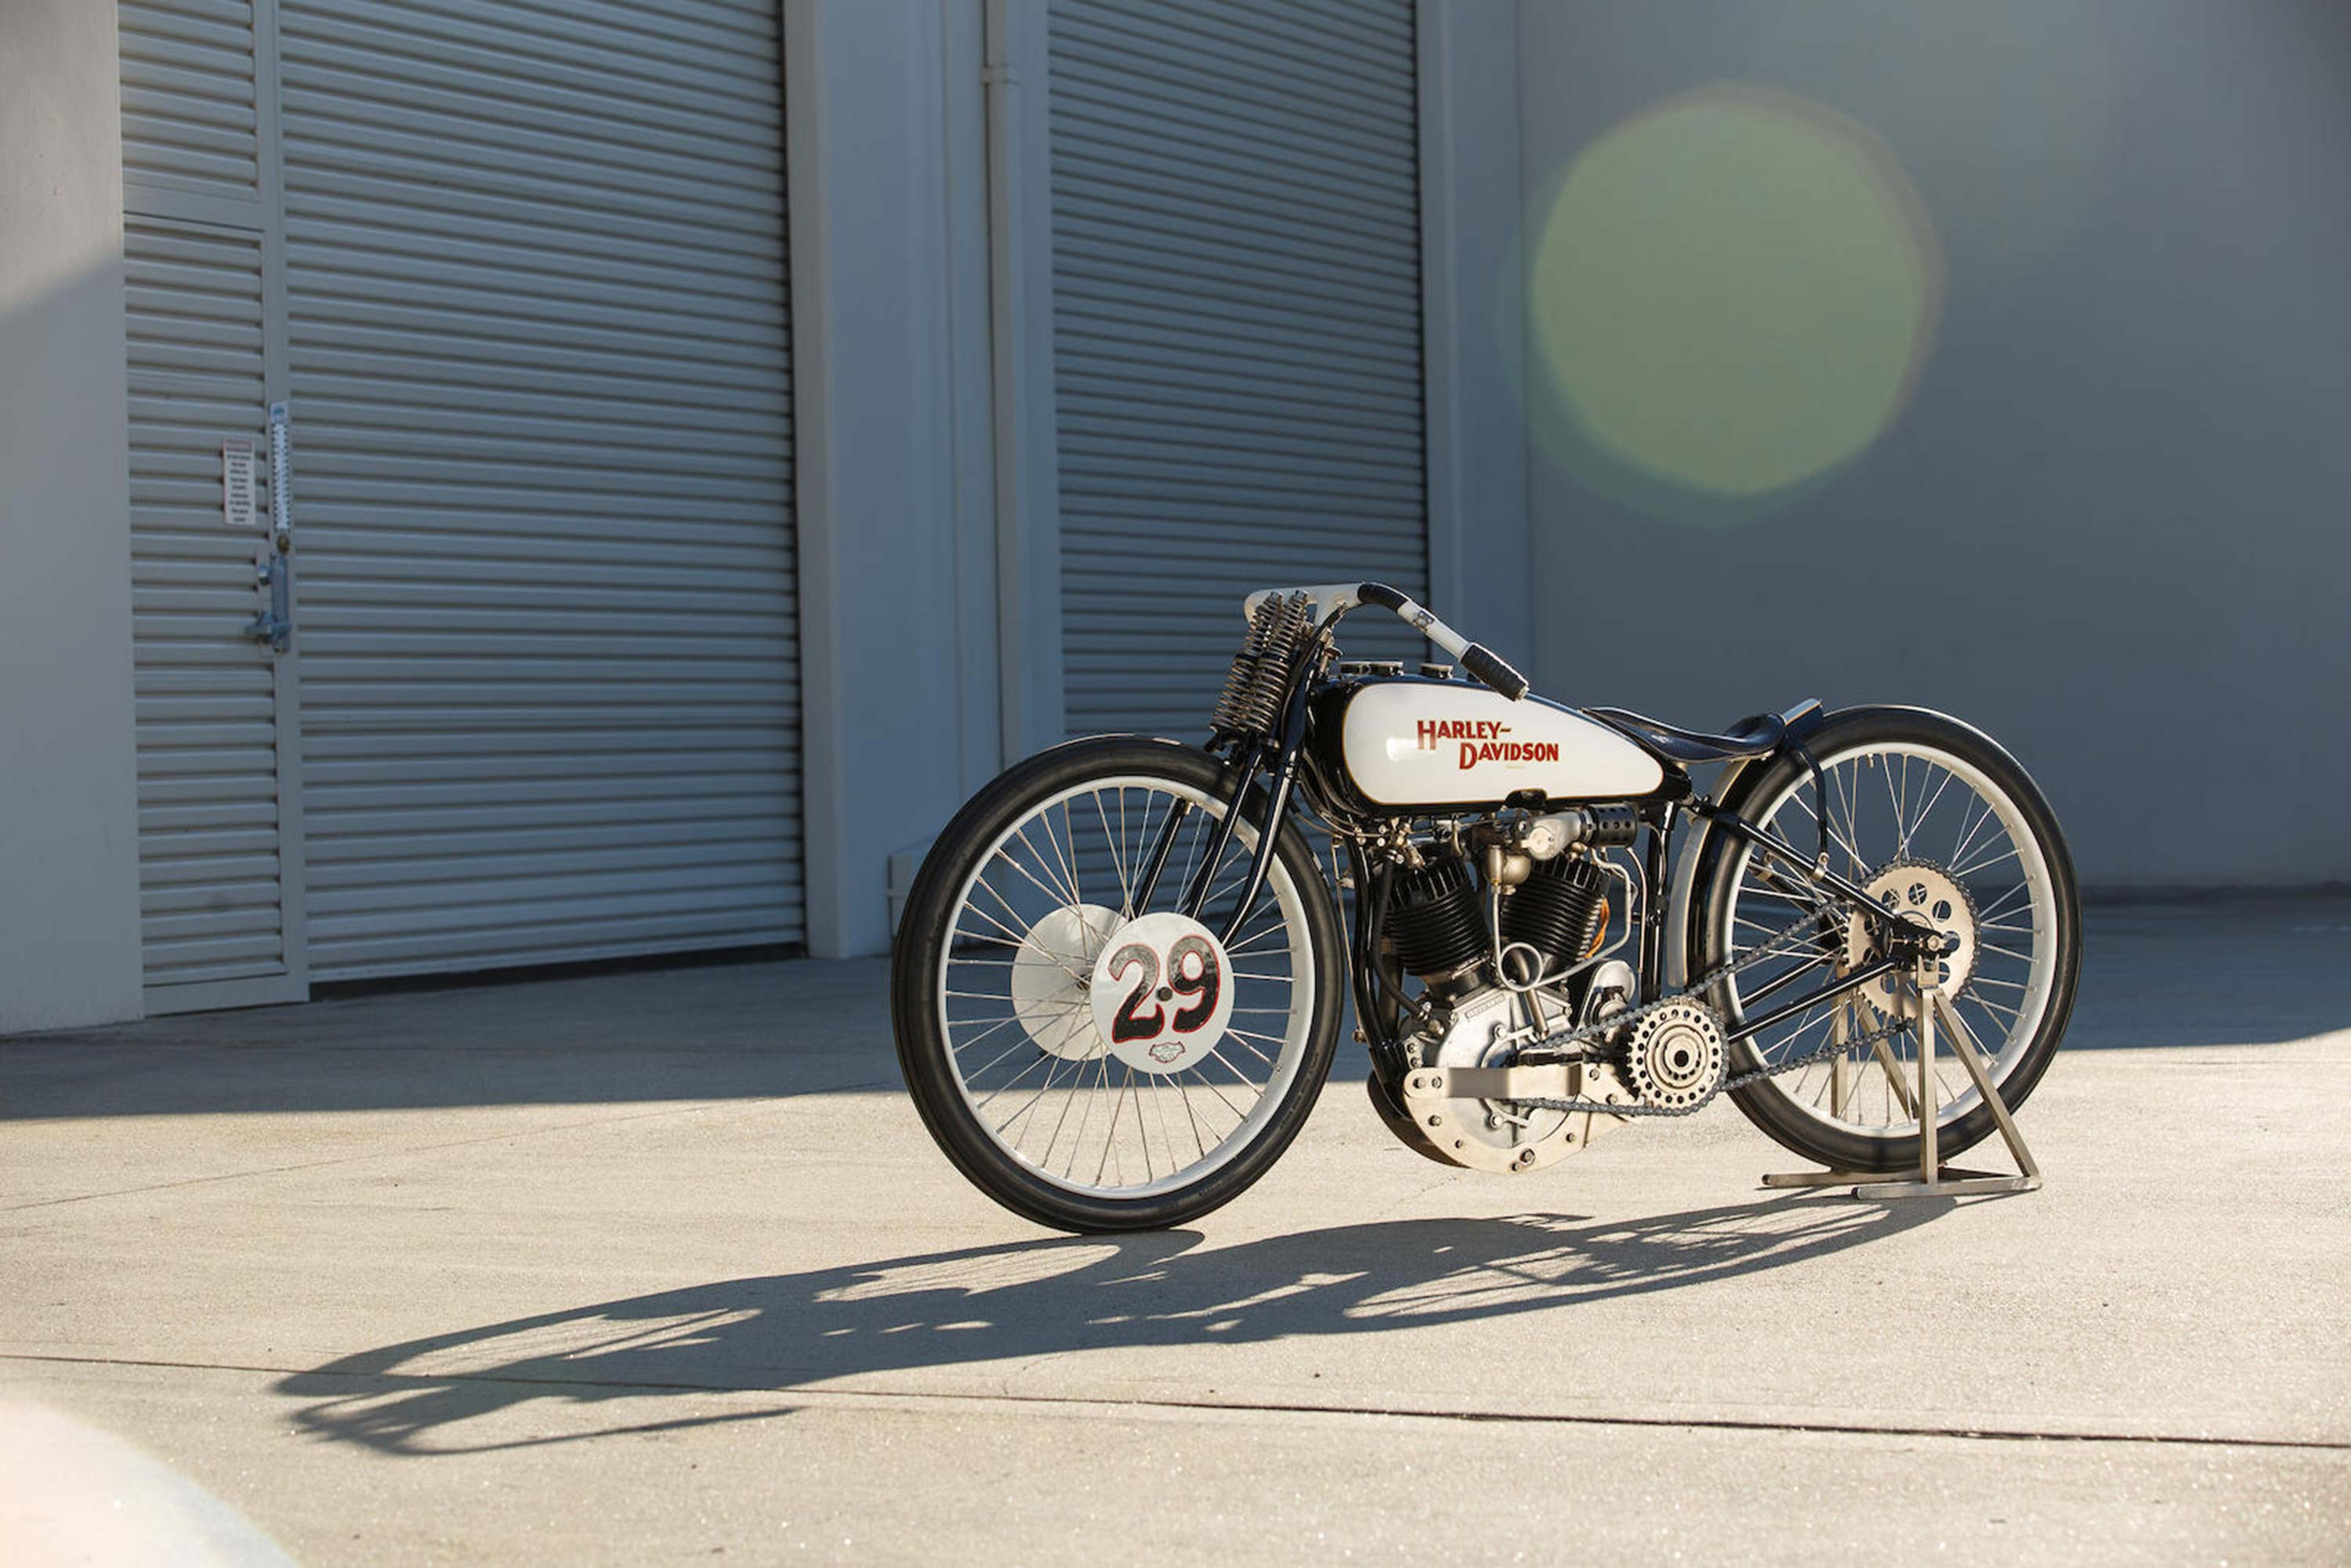 Evel Knievel S Harley Davidson Xl1000 Up For Auction: Bonham's Next Motorcycle Auction Is Looking Incredible